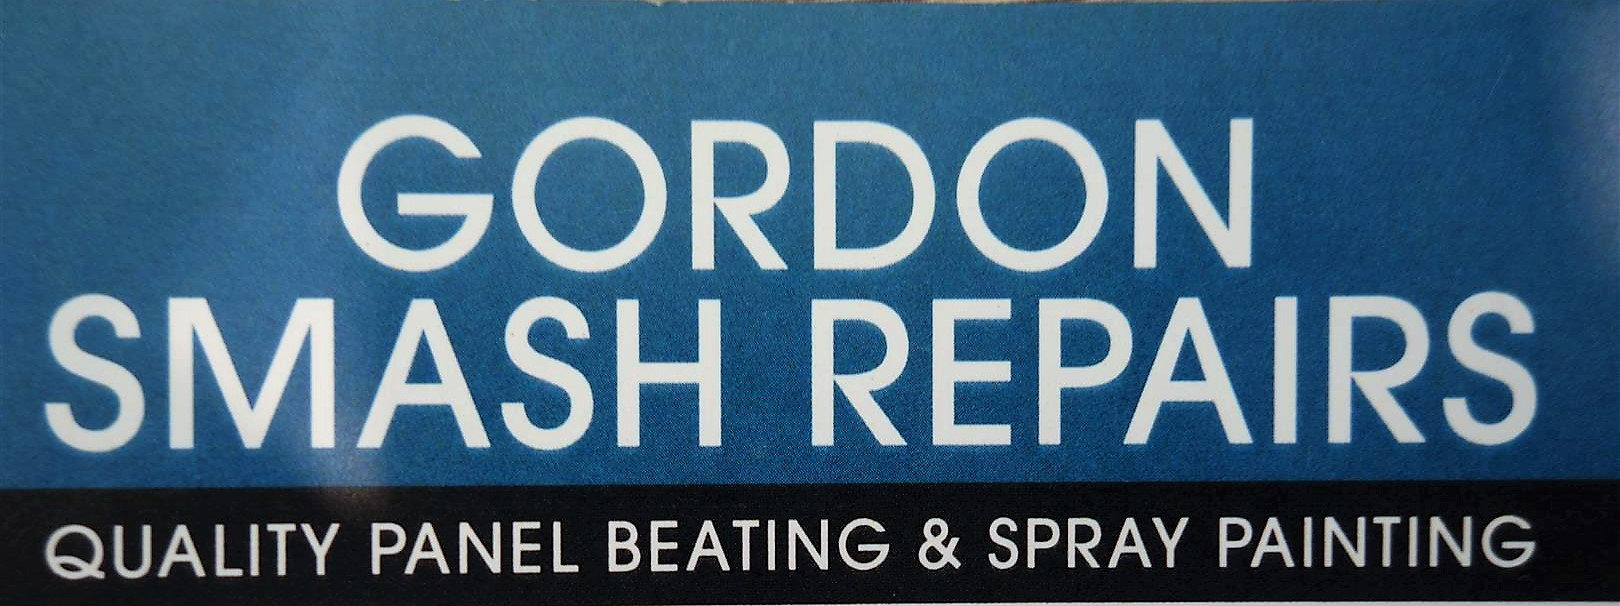 Gordon Smash Repairs Logo